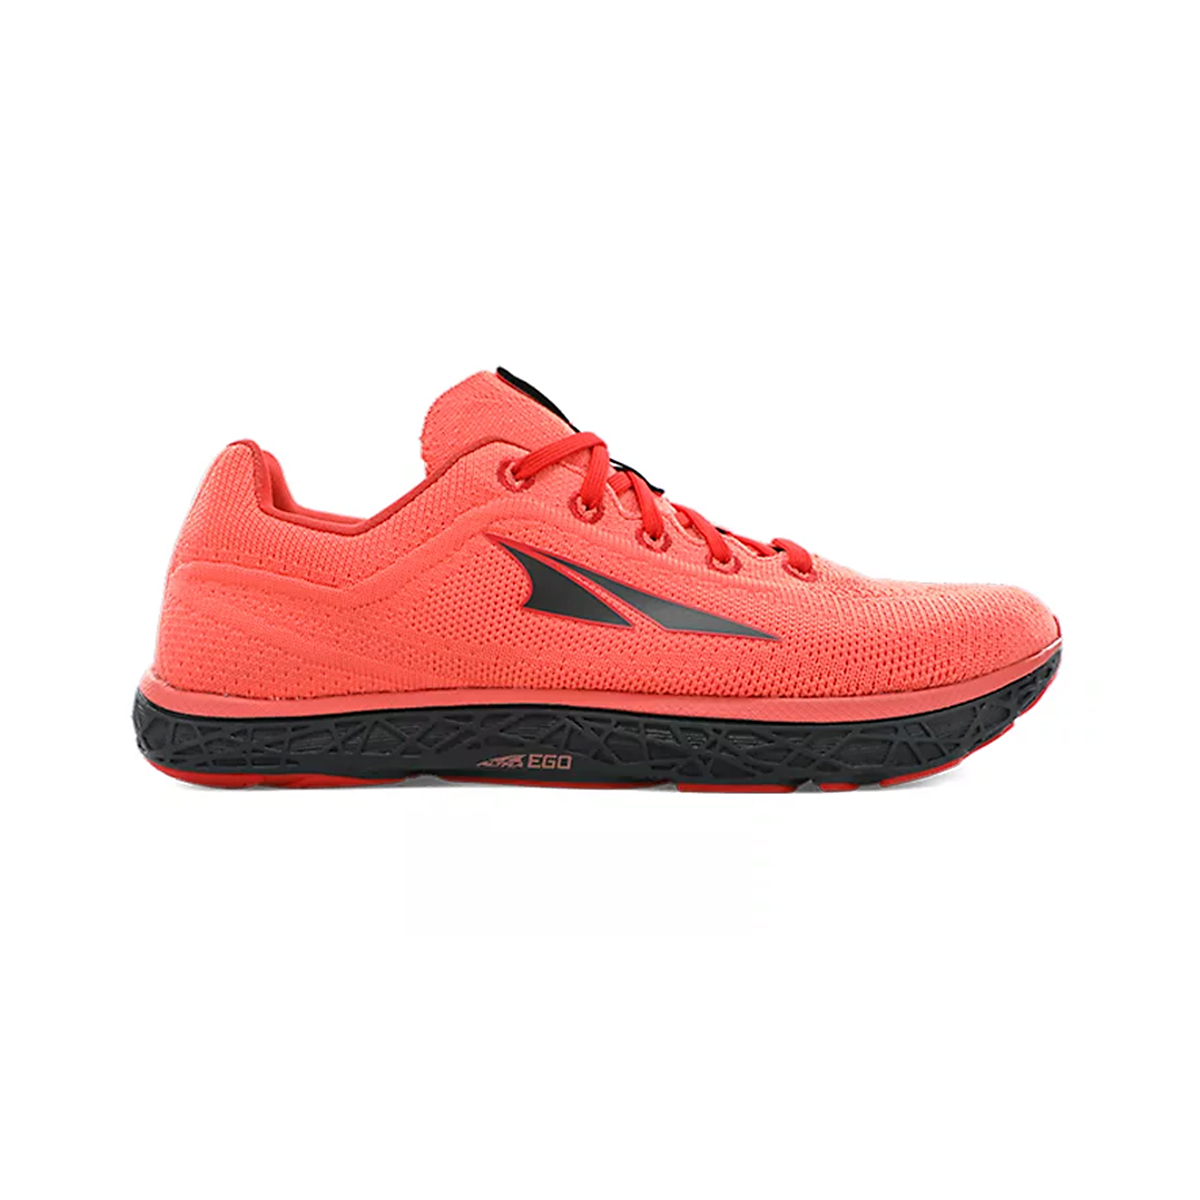 Women's Altra Escalante 2.5 Running Shoe - Color: Coral - Size: 5.5 - Width: Regular, Coral, large, image 1